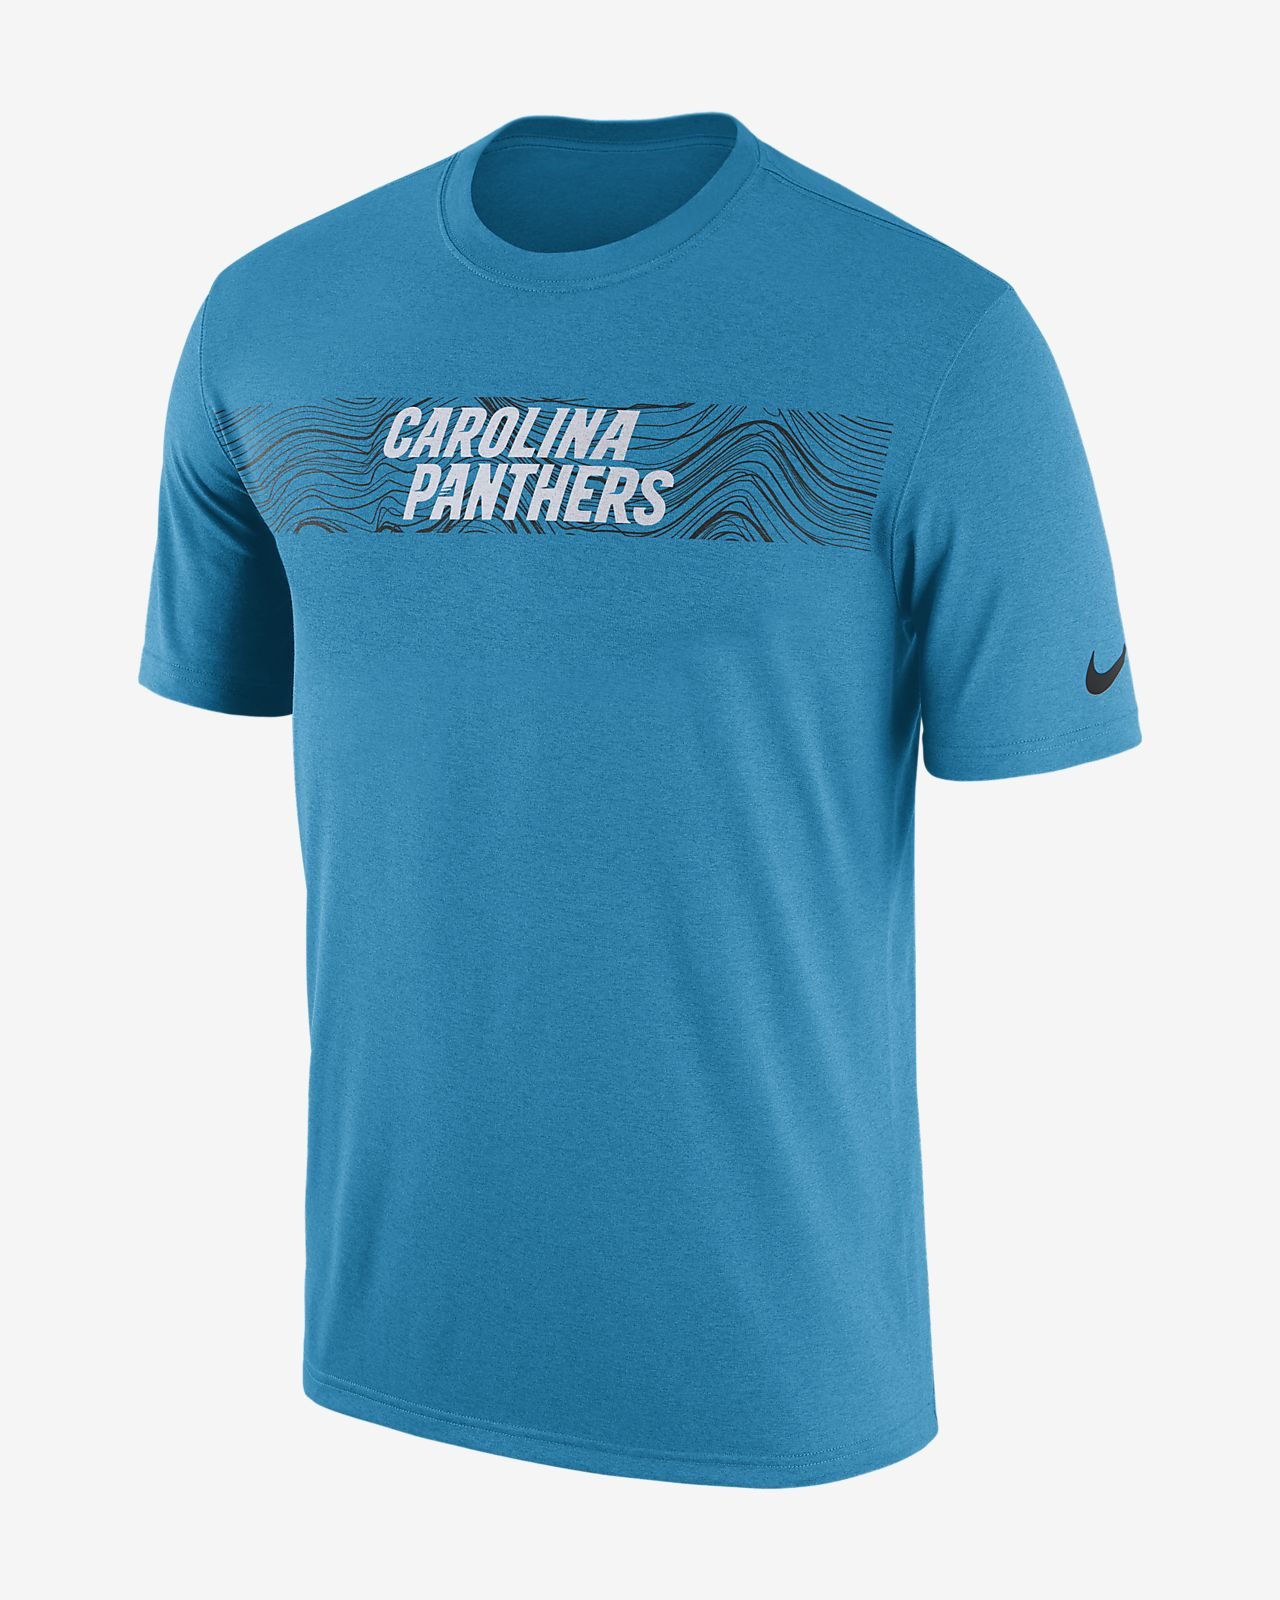 Nike Dri-FIT Legend Seismic (NFL Panthers) Men's T-Shirt